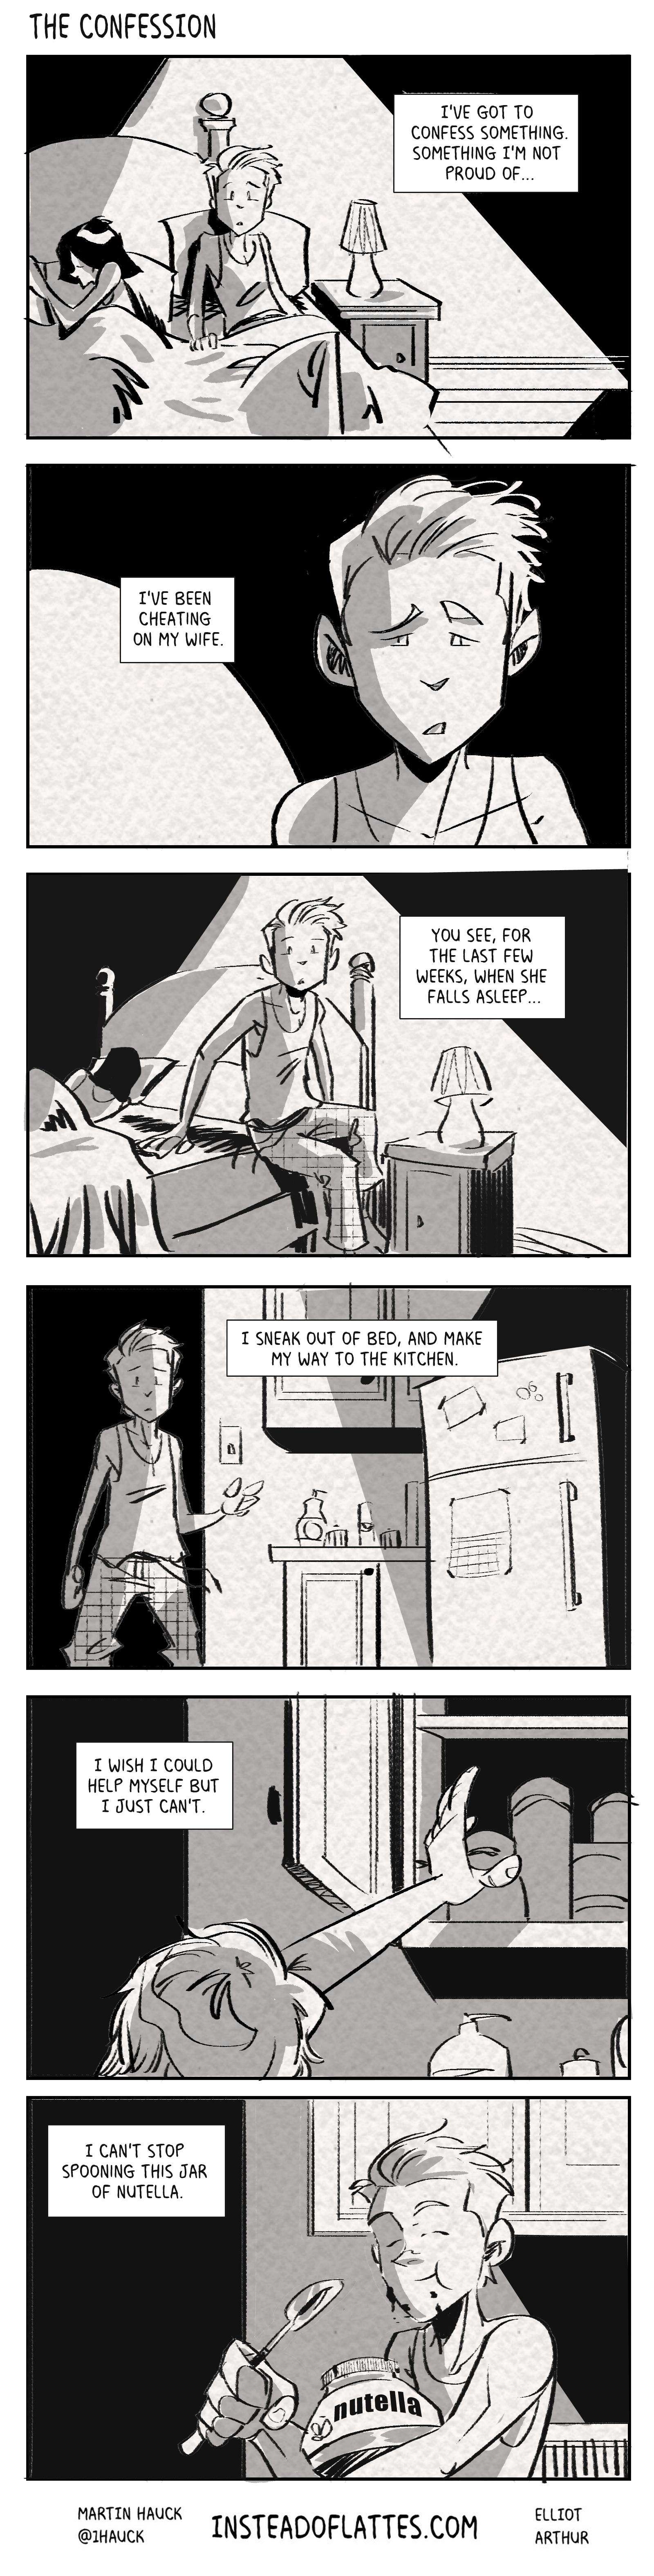 011 - The Confession - Full.jpg